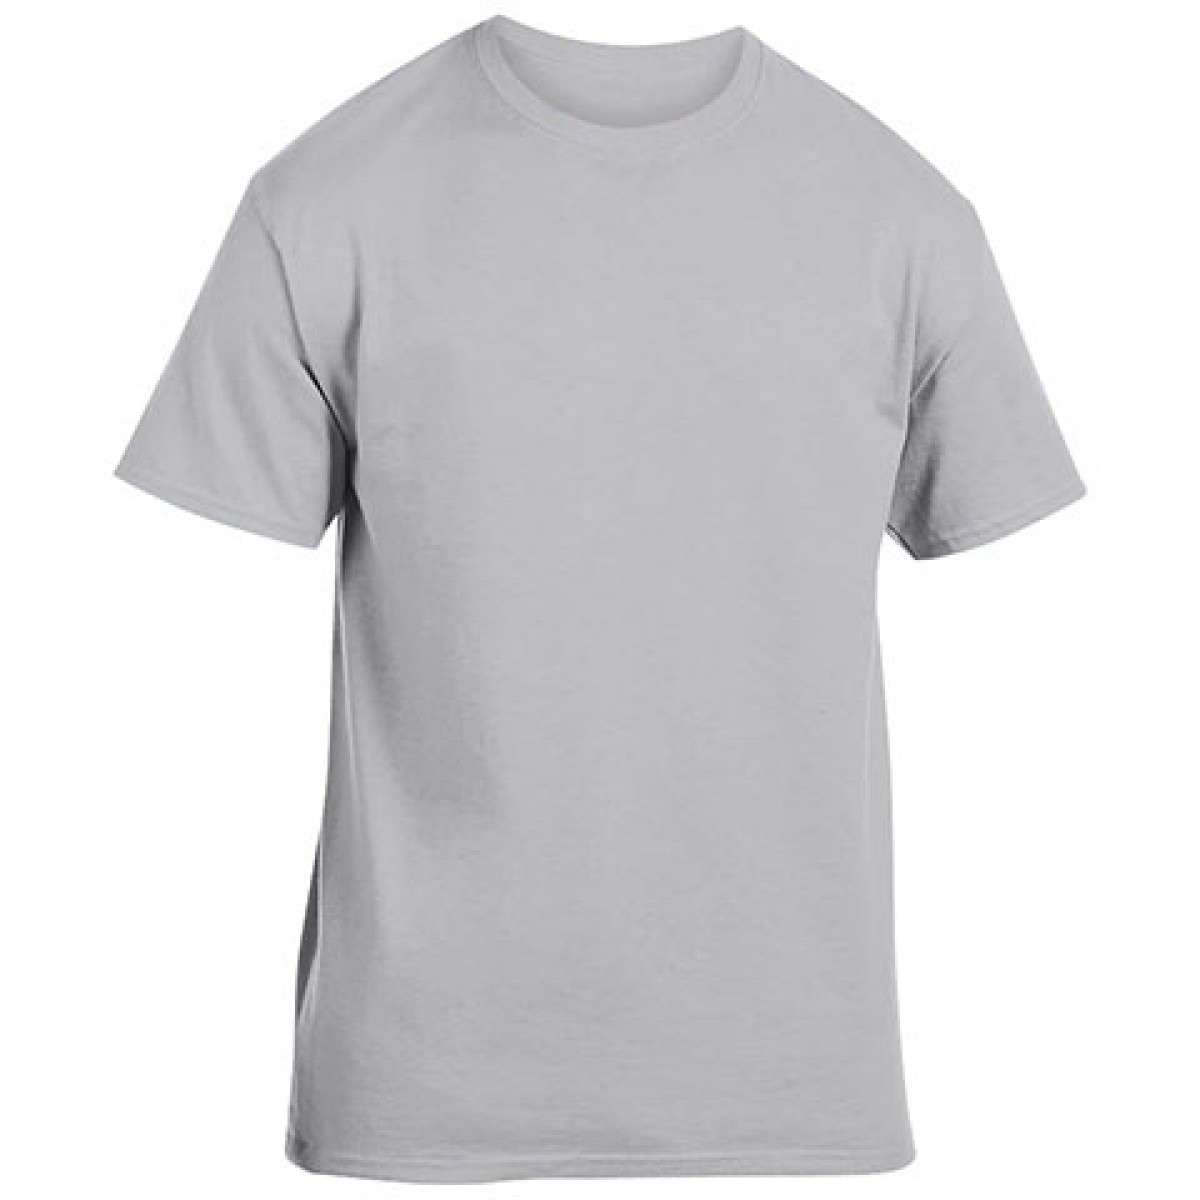 Heavy Cotton Activewear T-Shirt-Ash Gray-2XL